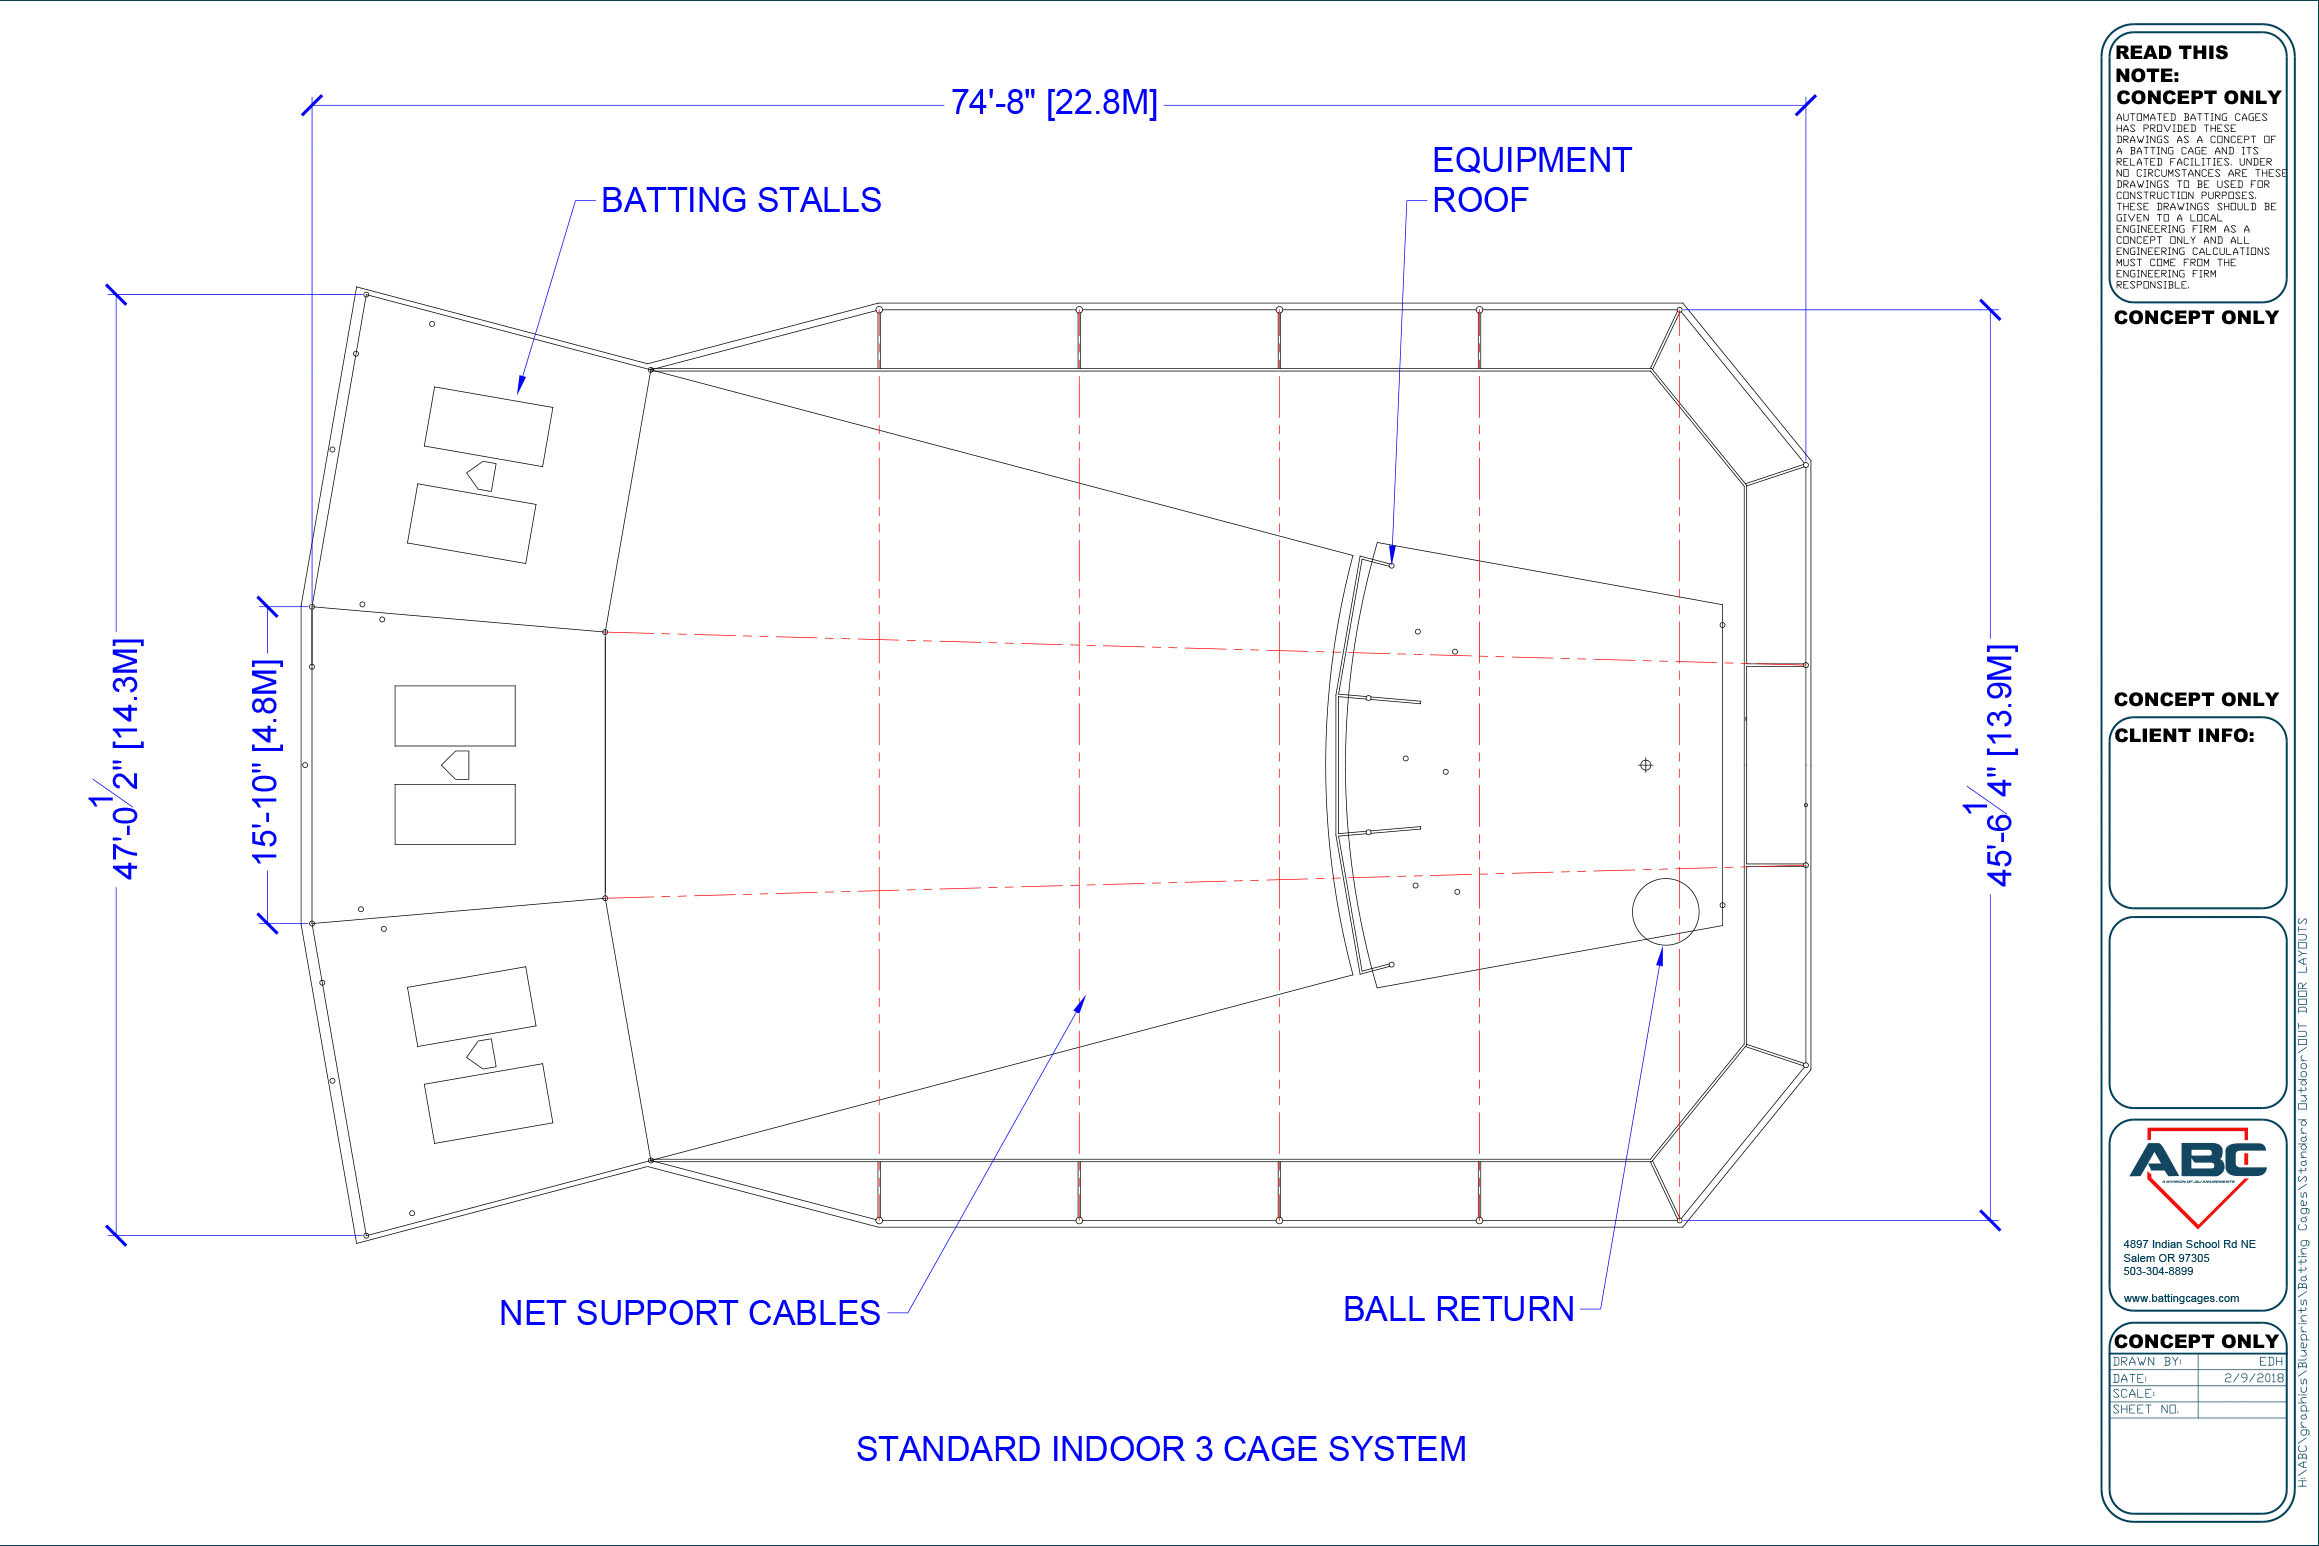 ABC standard indoor 3 cage system blueprint